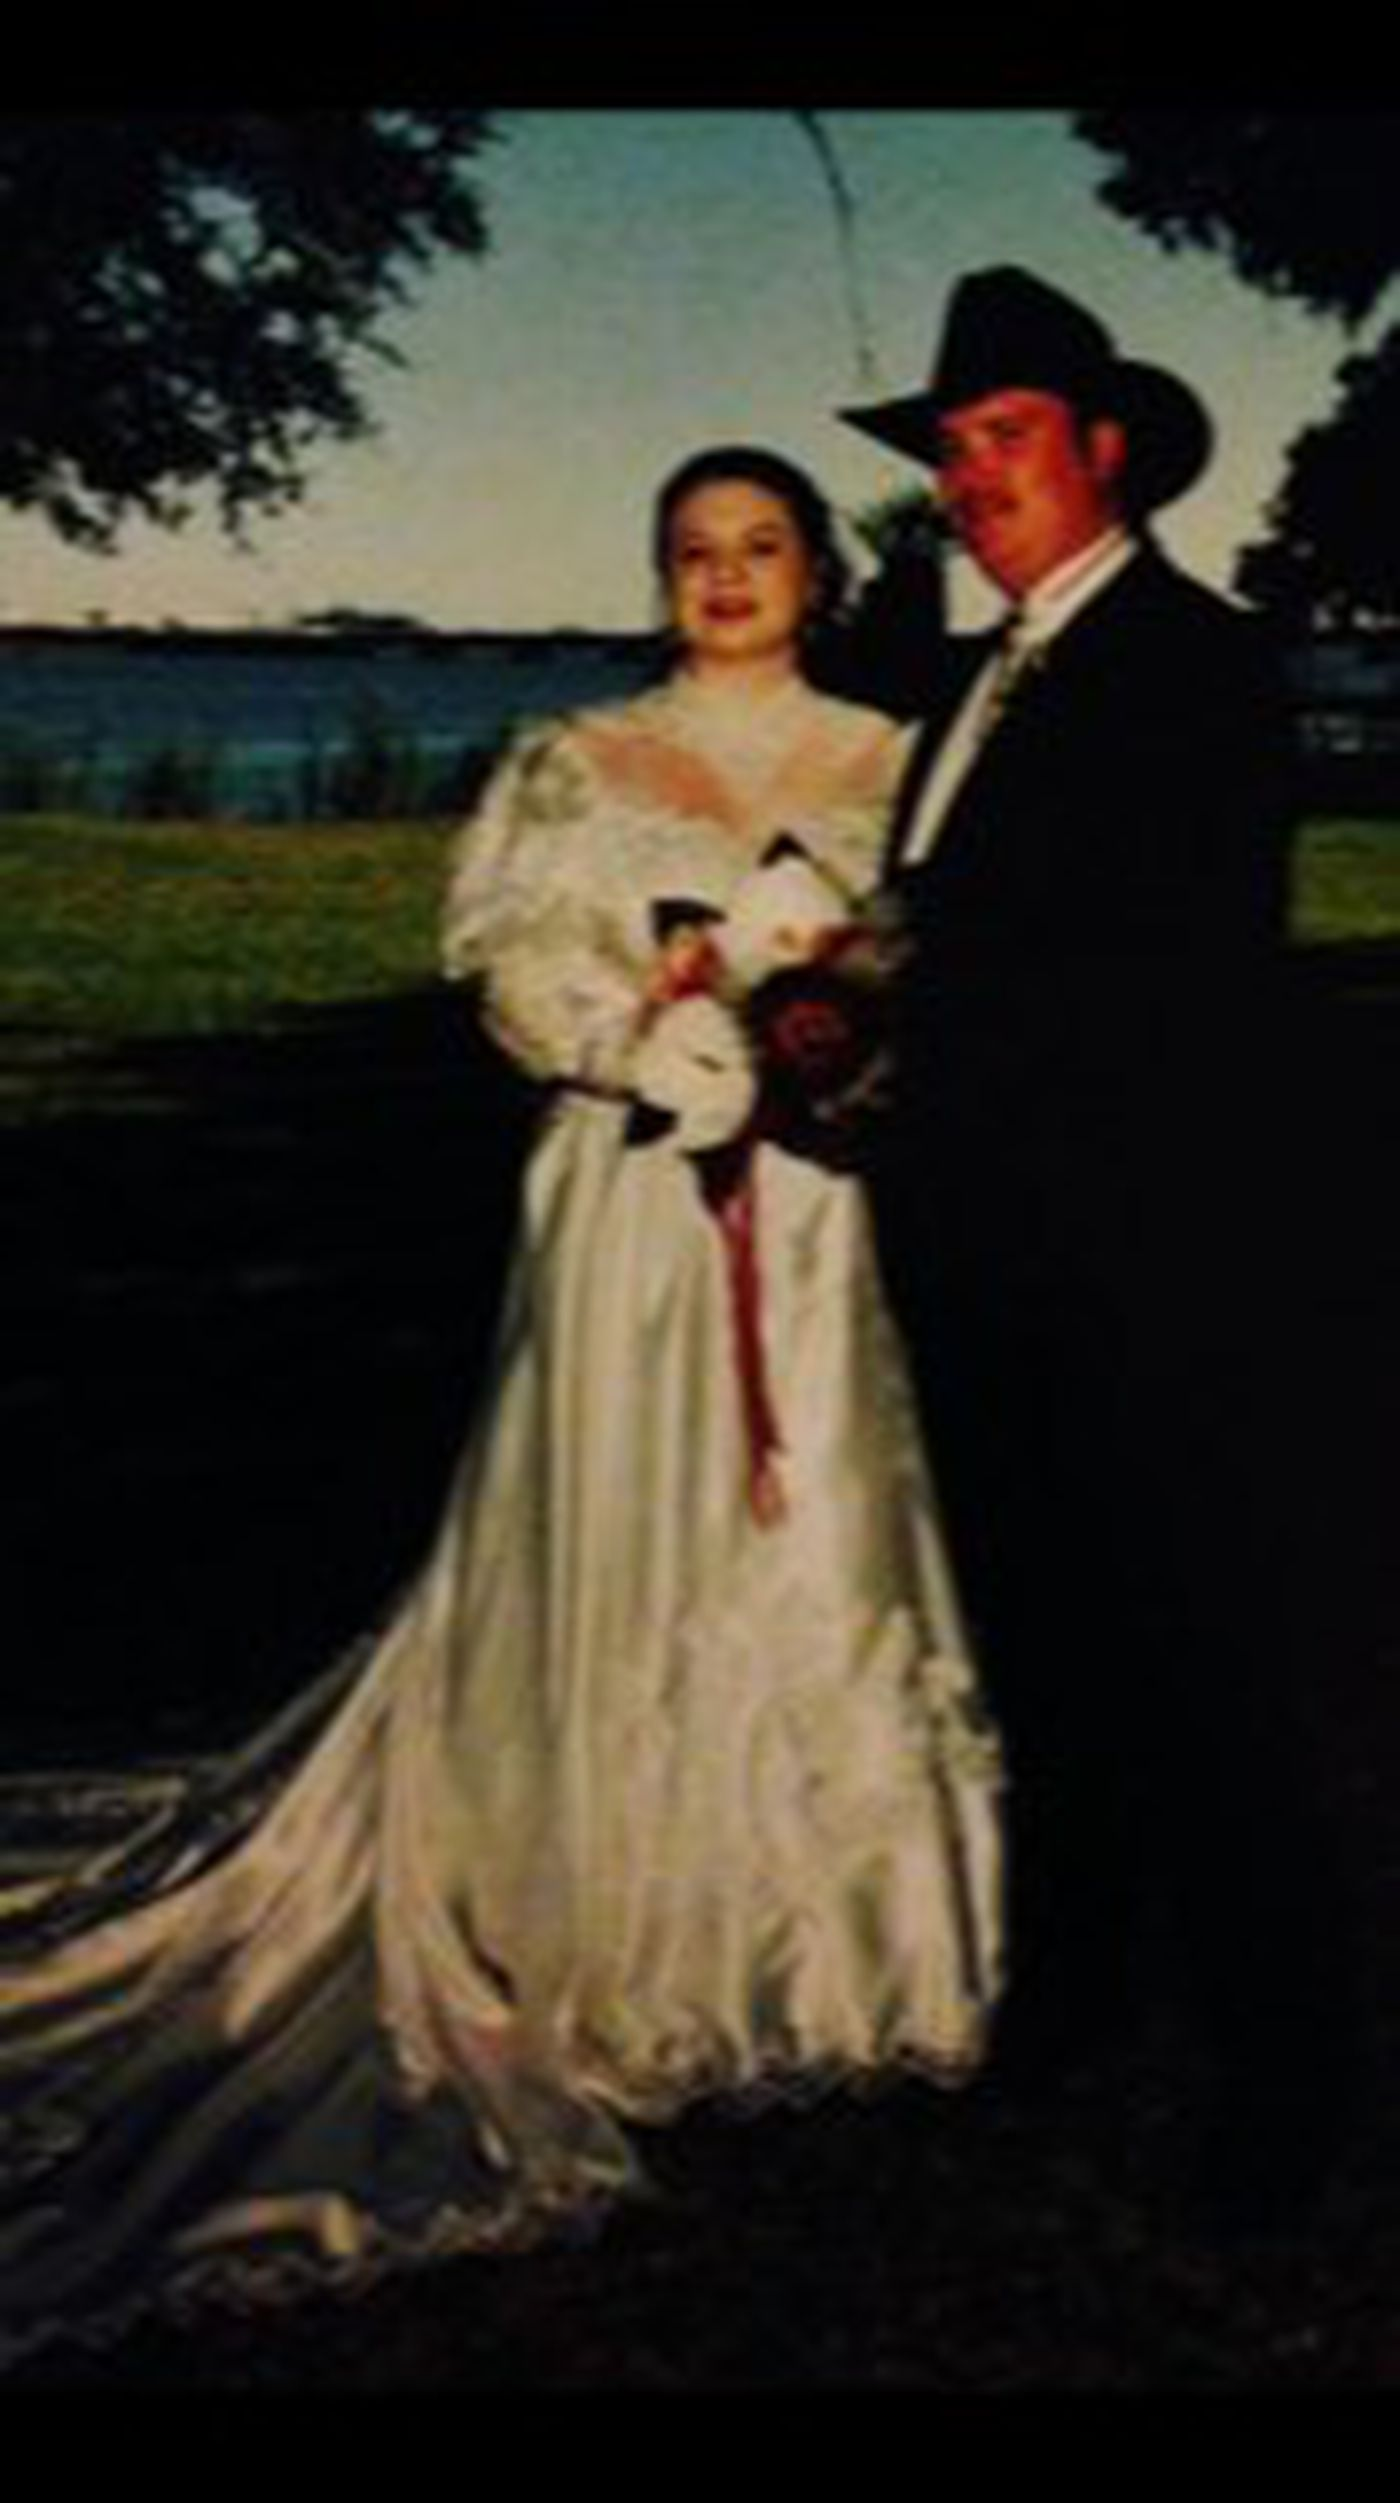 Eric and Lisa, pictured here on their wedding day, spent 25 years together.